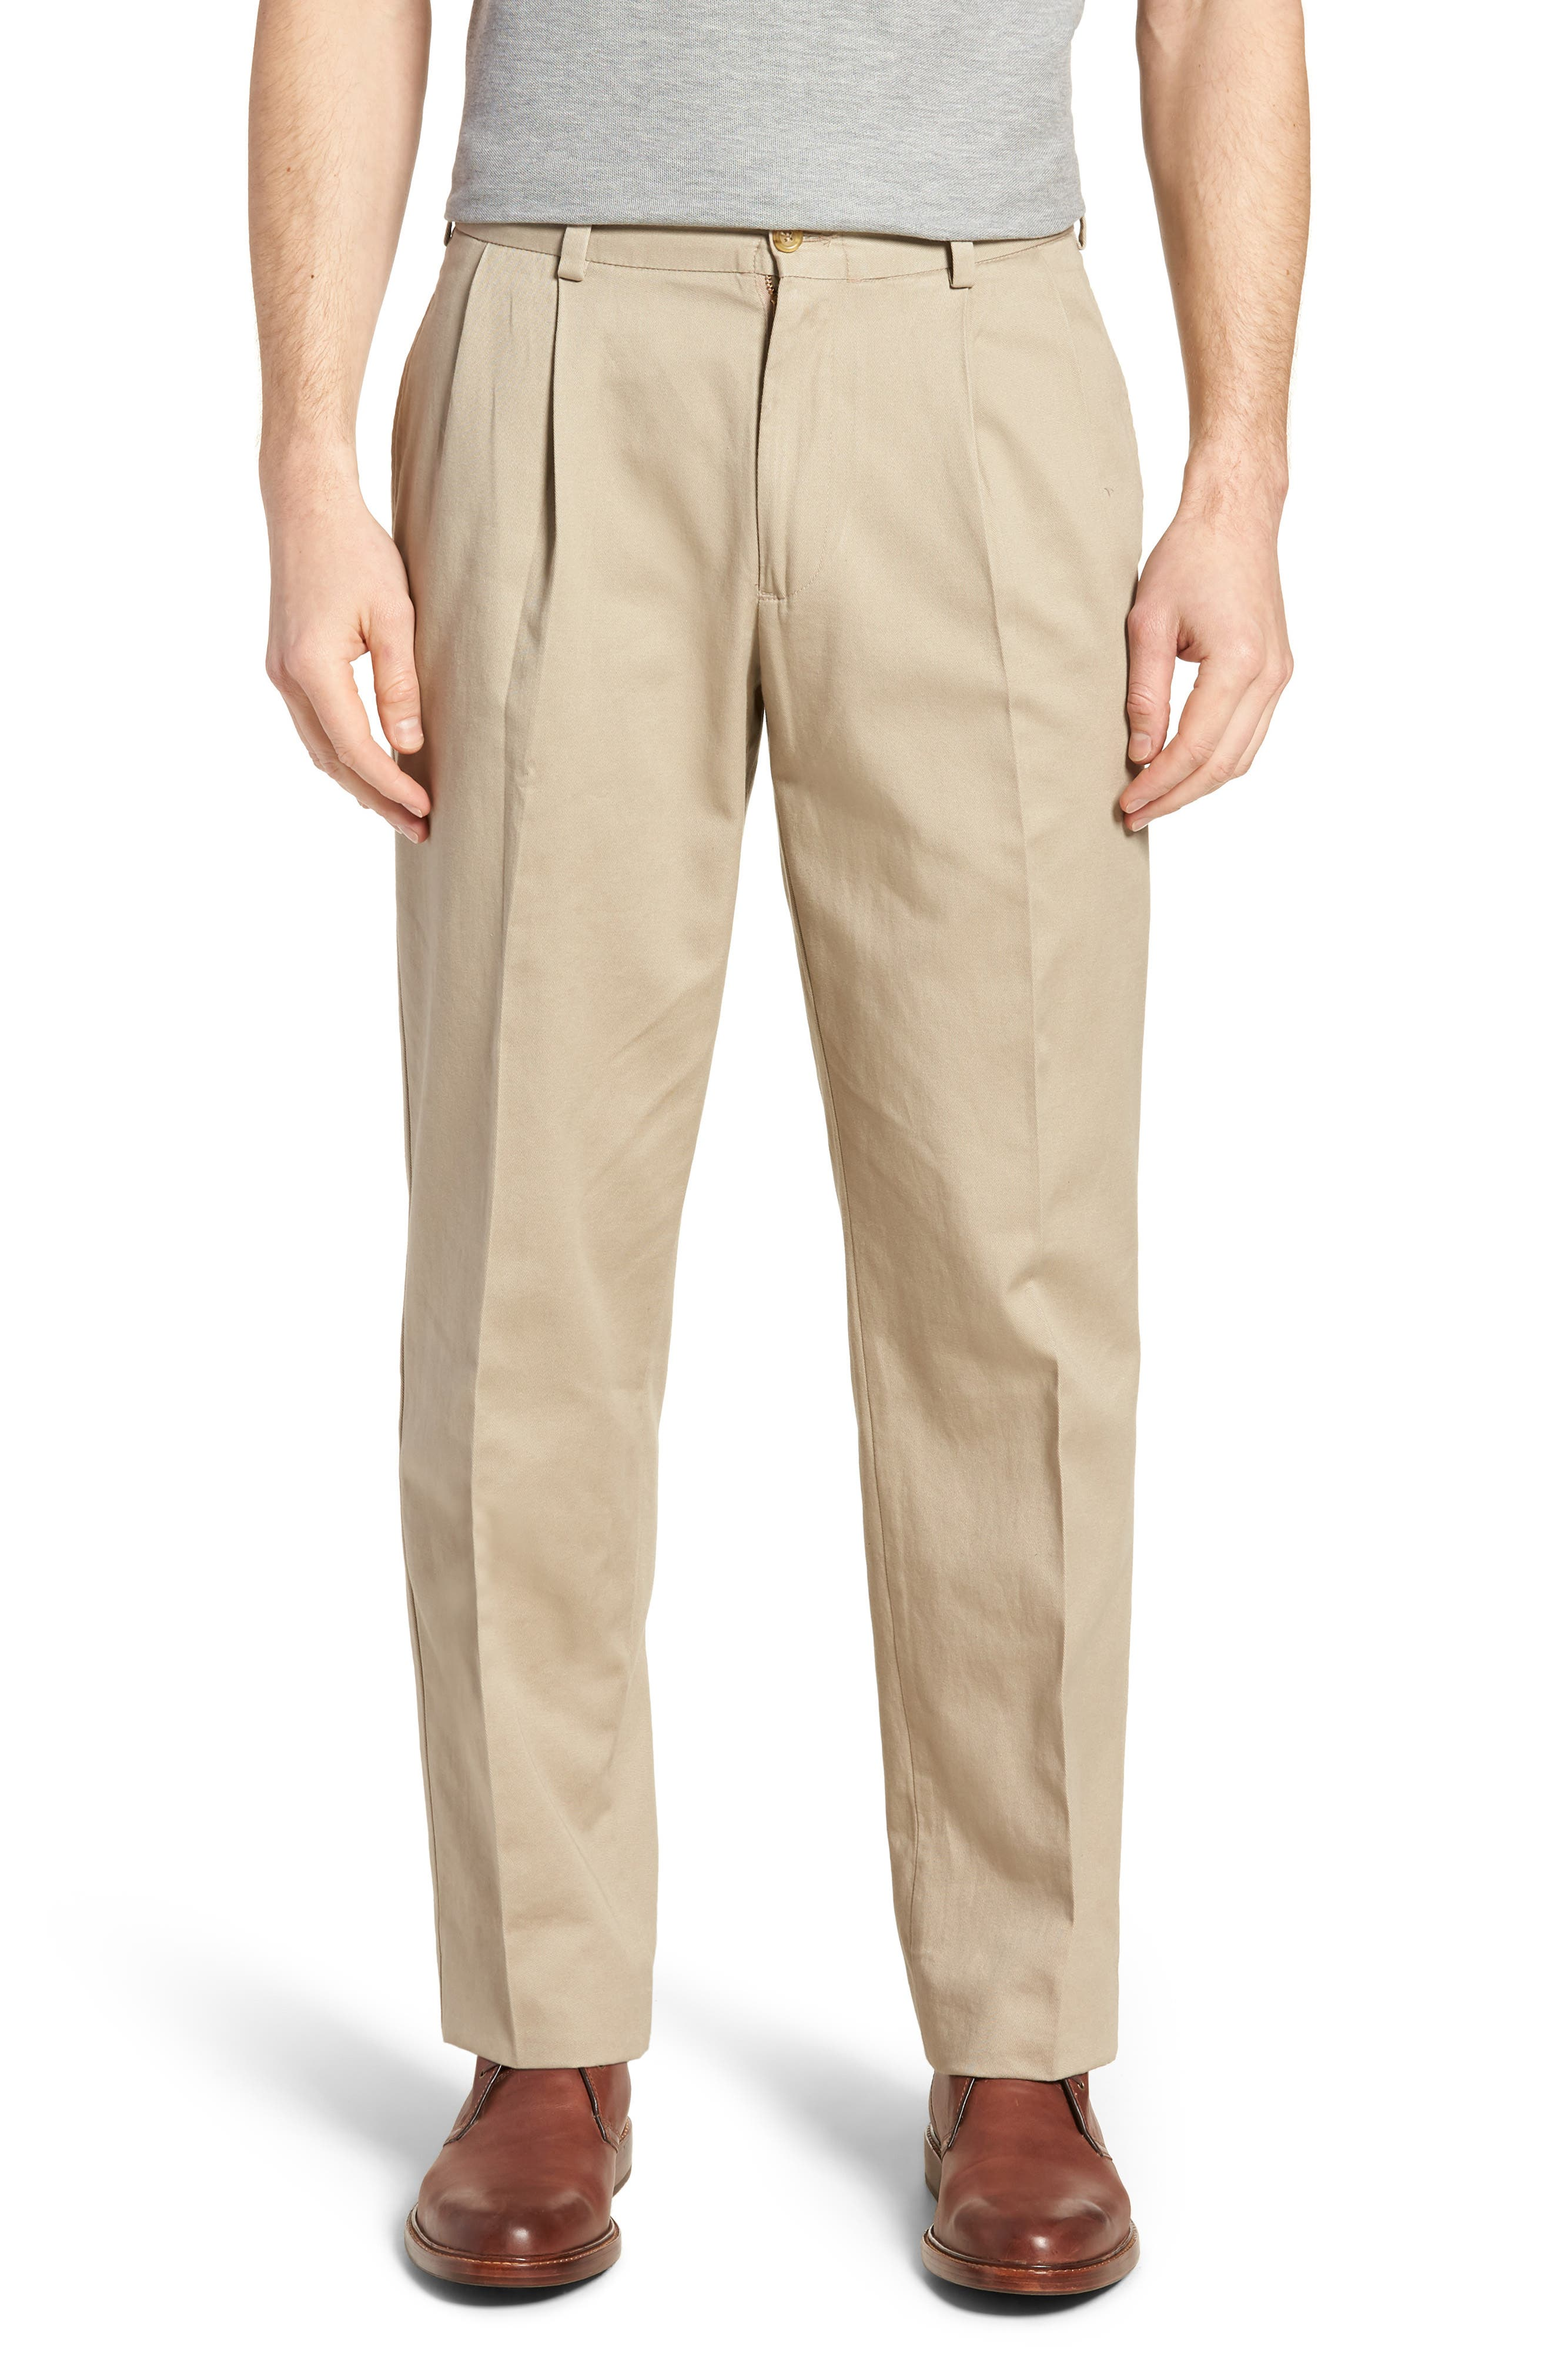 M2 Classic Fit Pleated Vintage Twill Pants,                         Main,                         color, 250